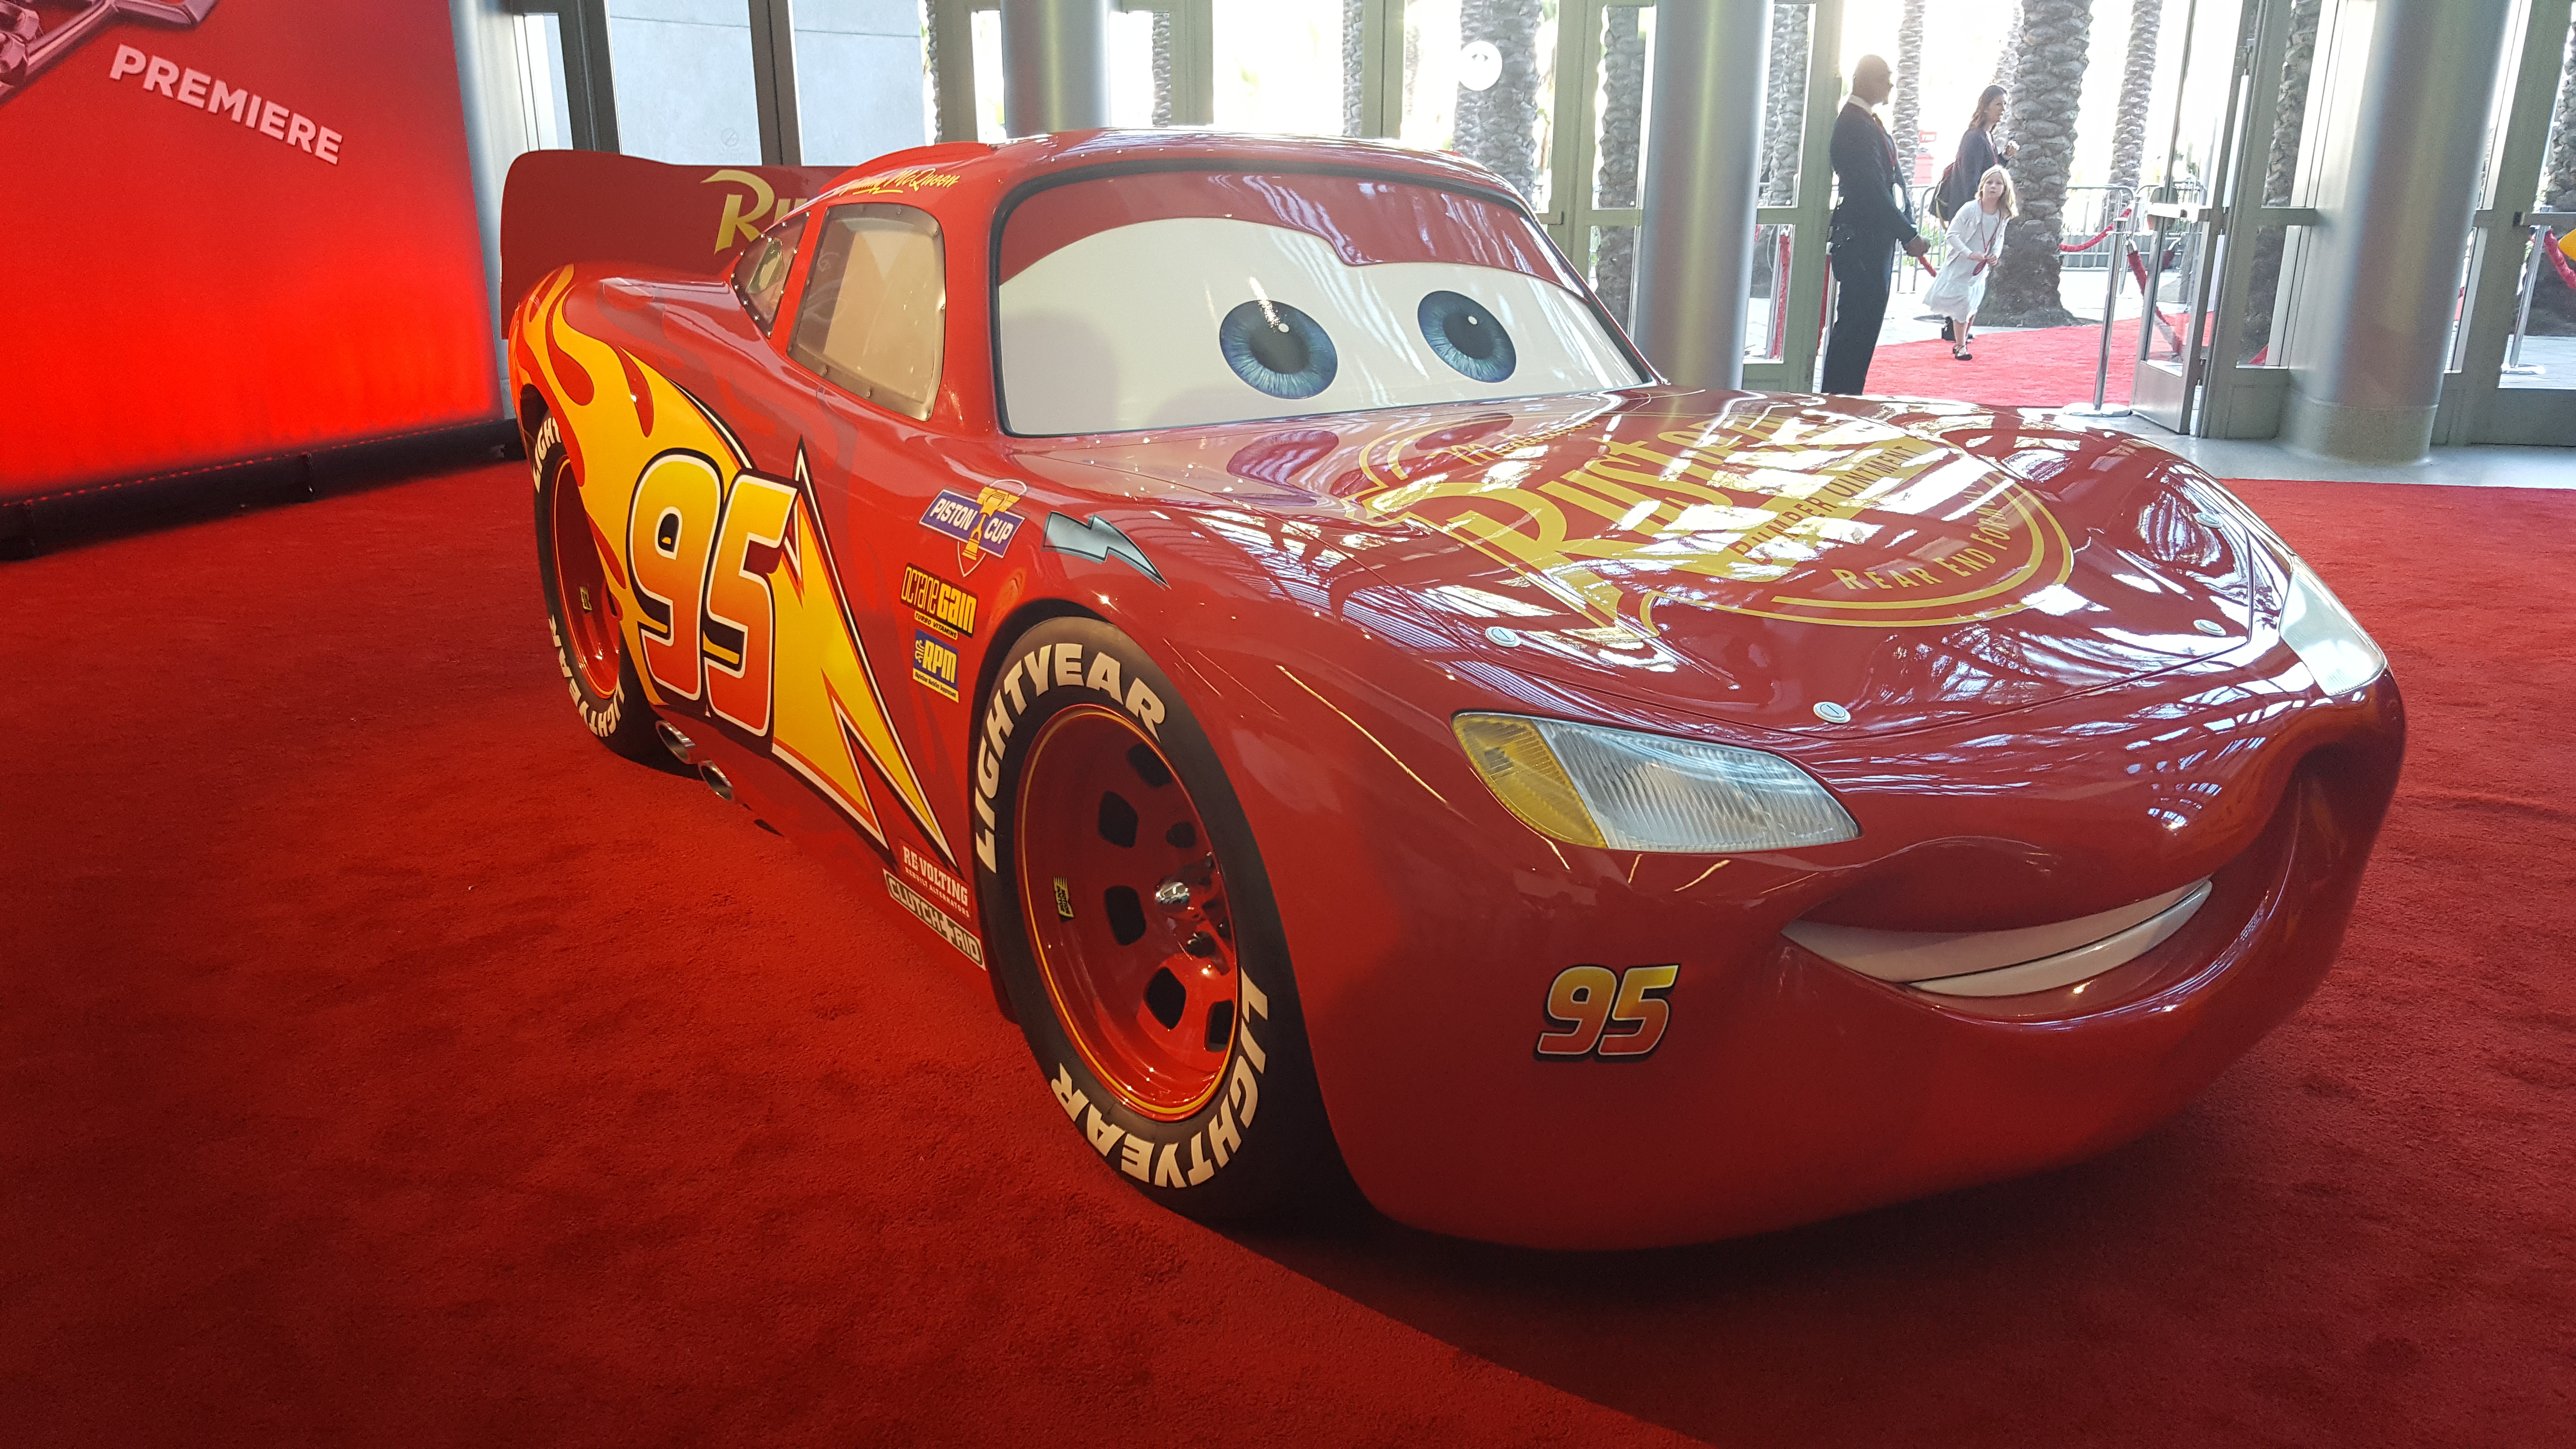 cars 3 red carpet premiere cars3 queen thrifty. Black Bedroom Furniture Sets. Home Design Ideas